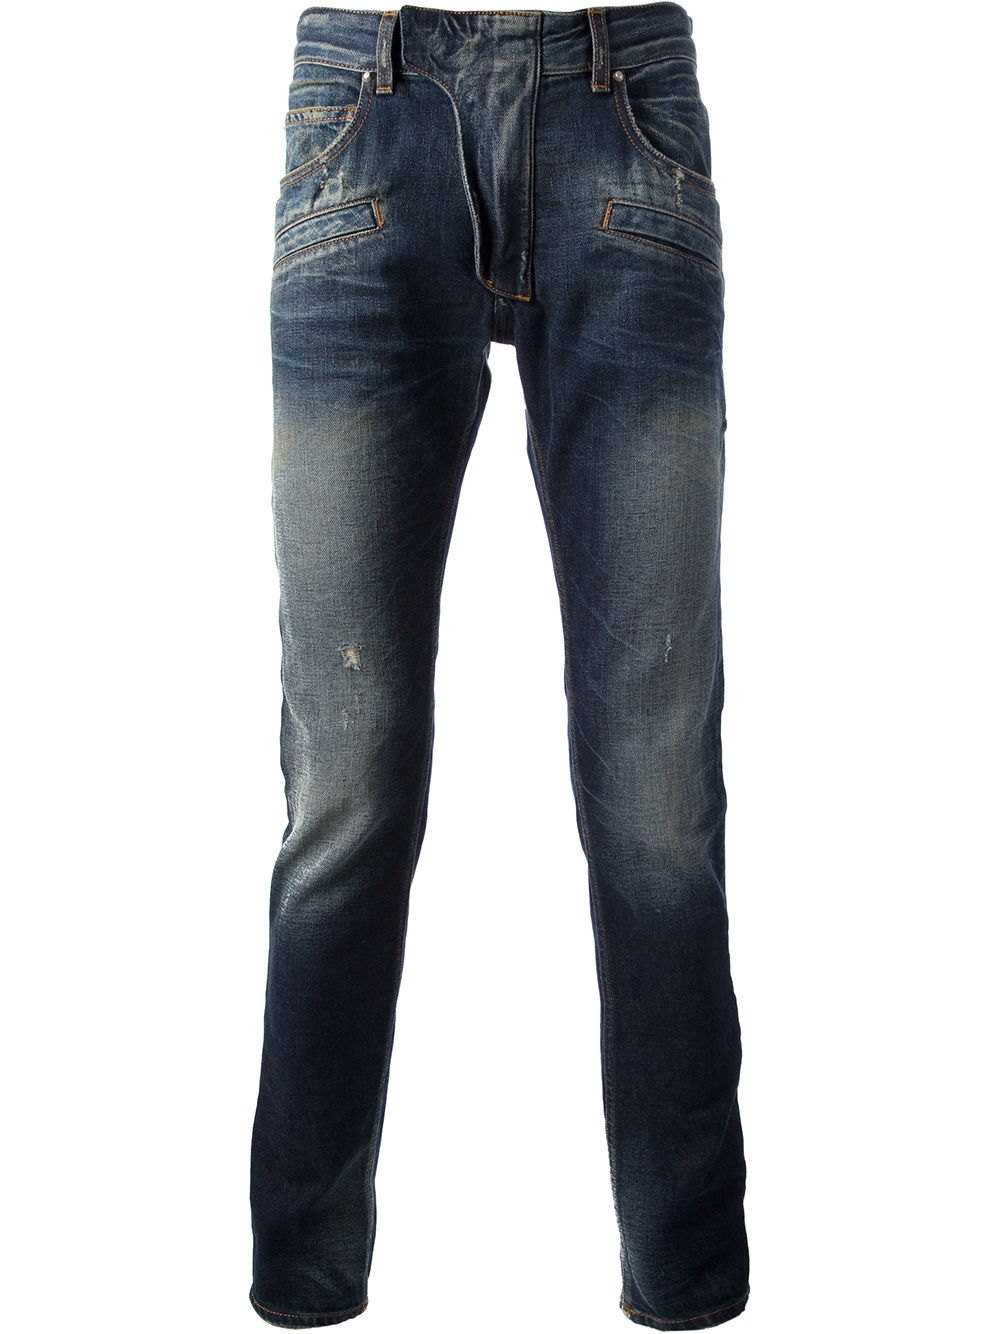 balmain super skinny jean in blue for men lyst. Black Bedroom Furniture Sets. Home Design Ideas